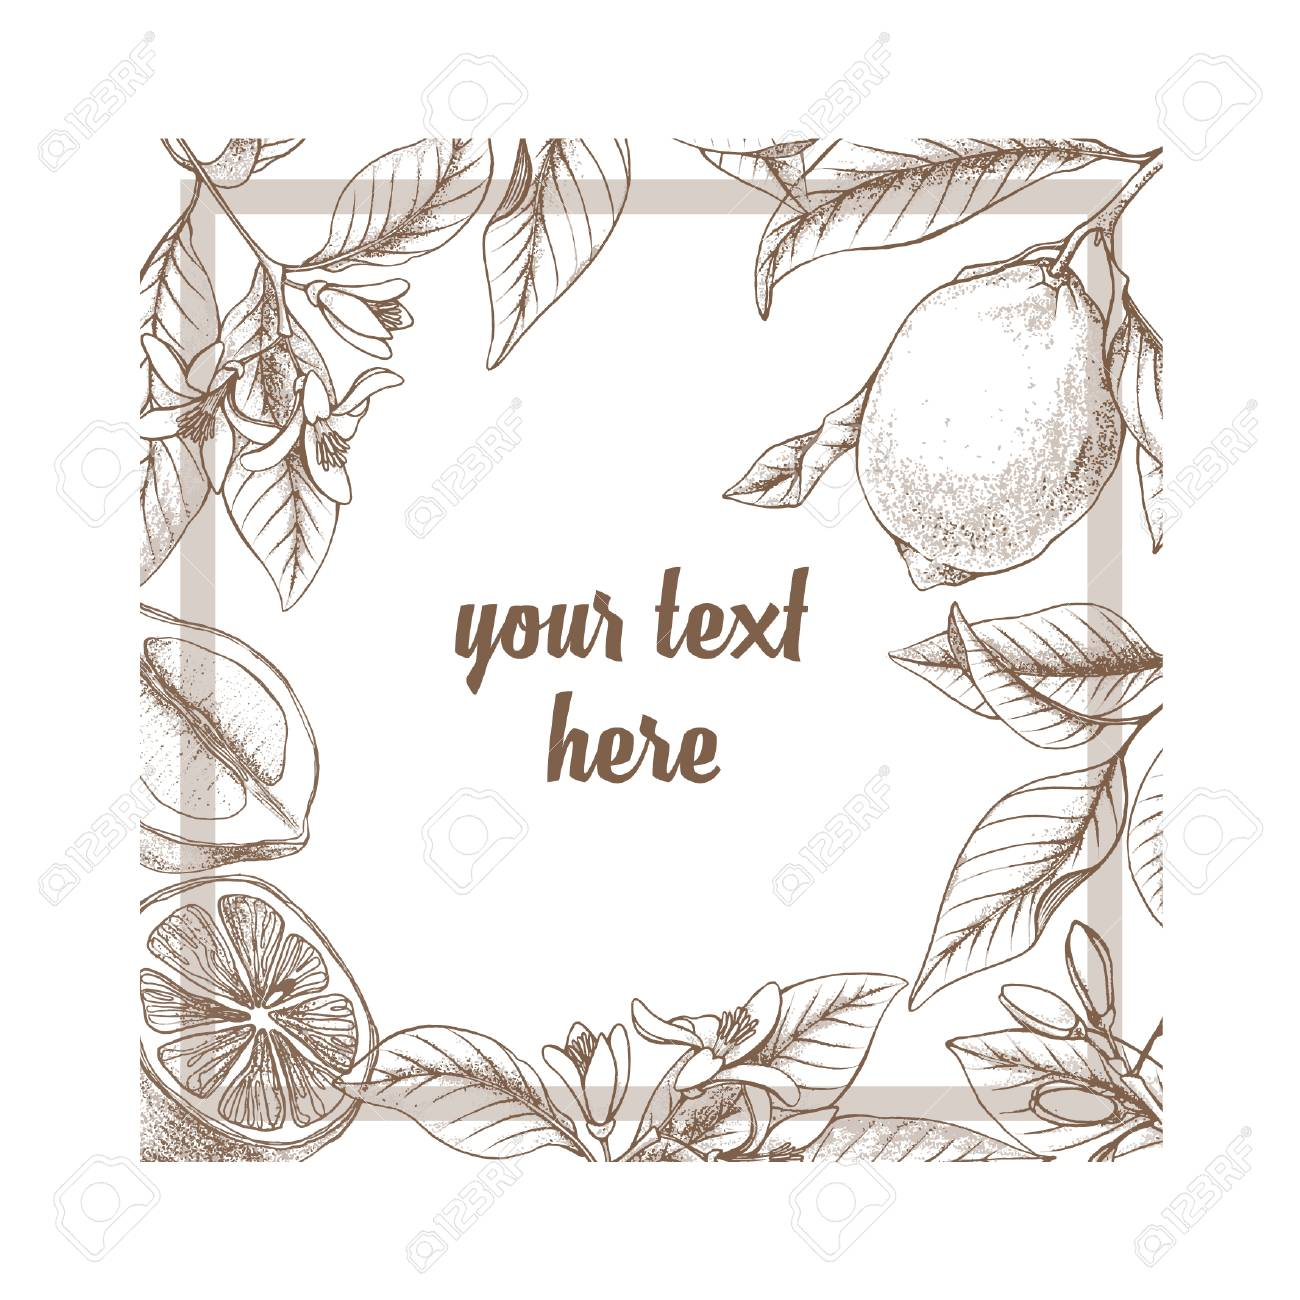 Vintage Botanical Lemon Square Frame Background Hand Drawn Outline